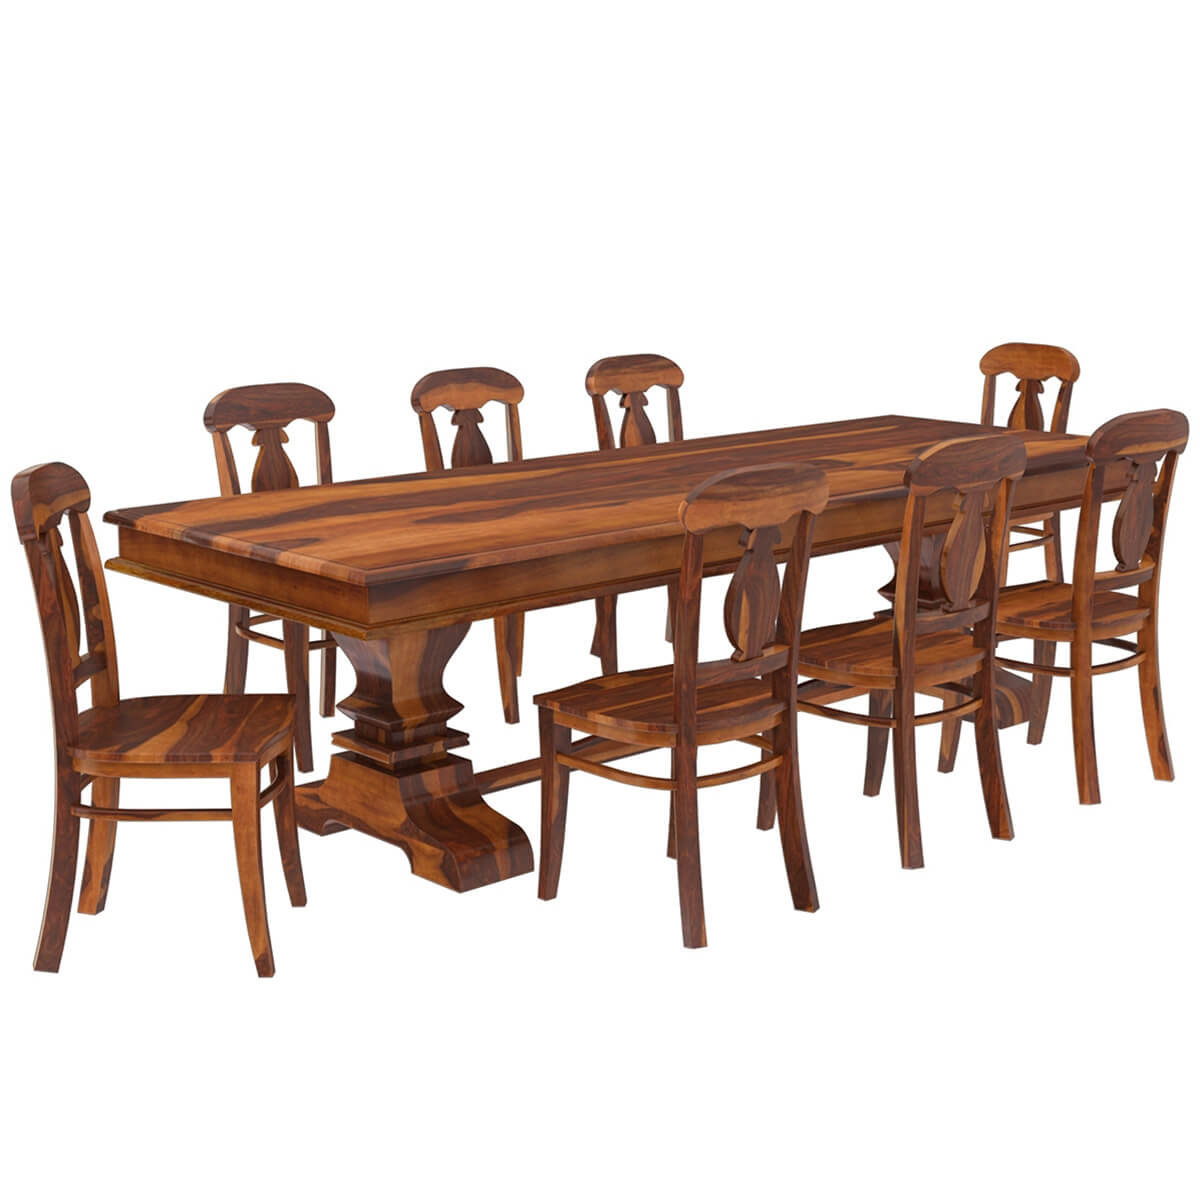 Nottingham solid wood 92 trestle dining table benches 2 for Solid wood dining table sets